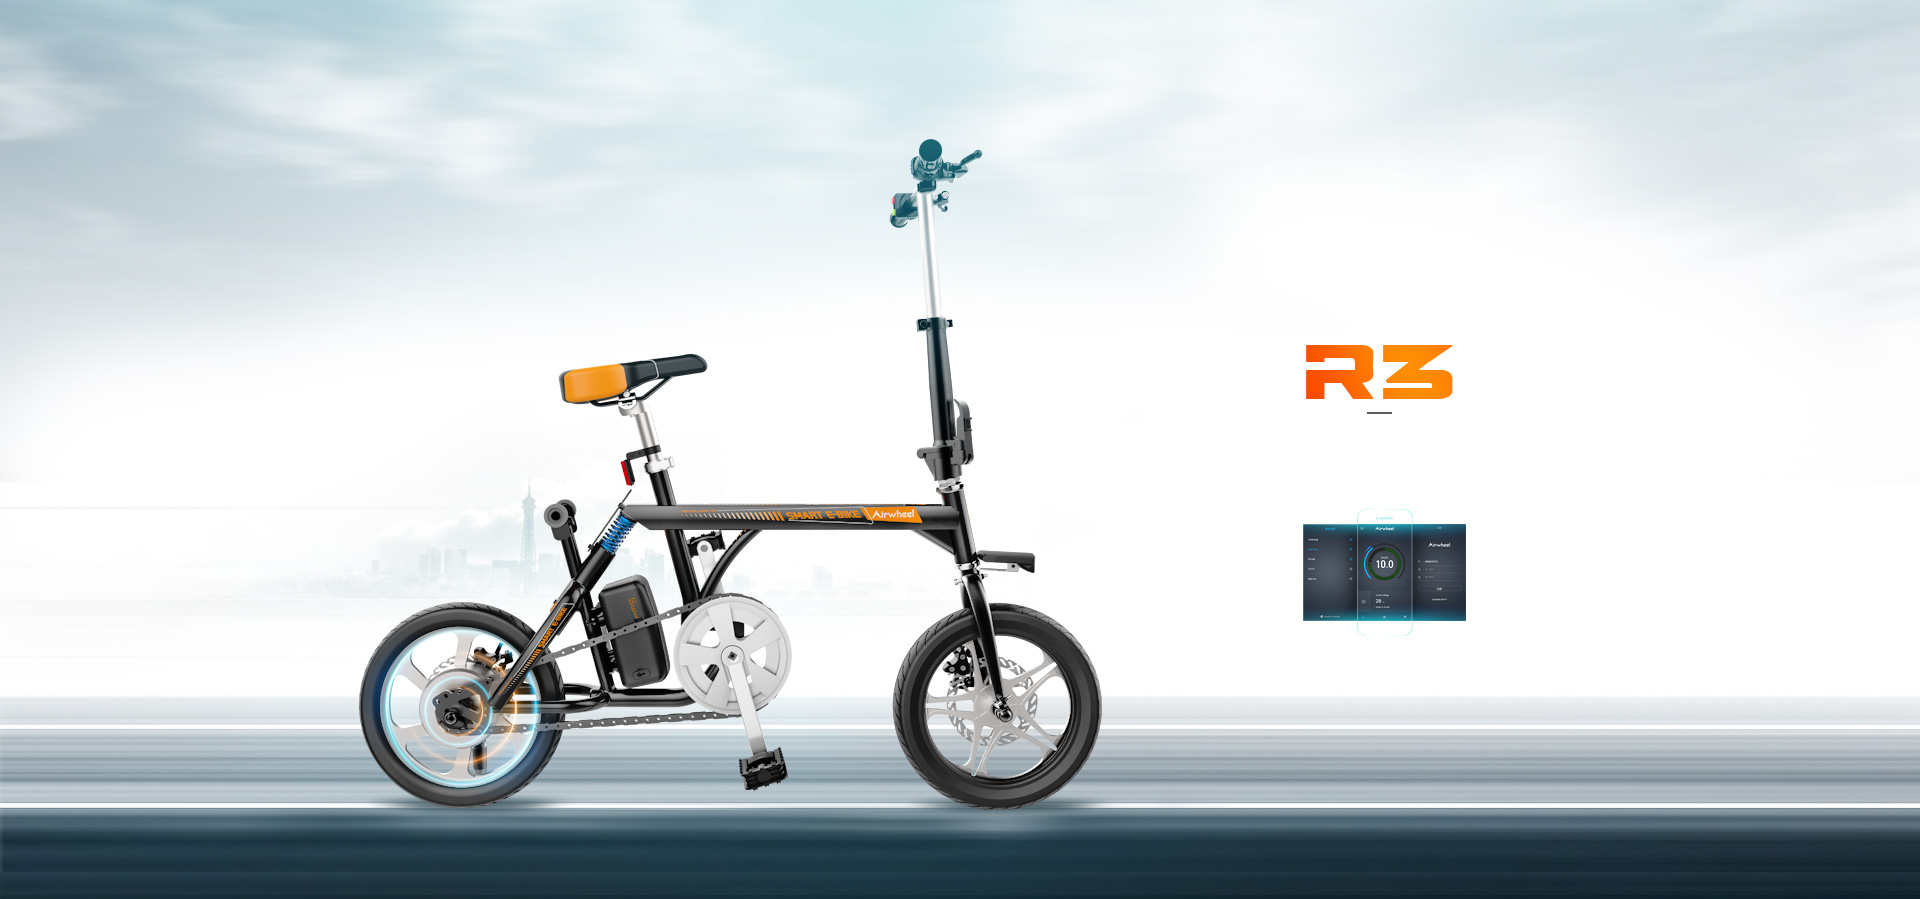 R3 electric moped bike